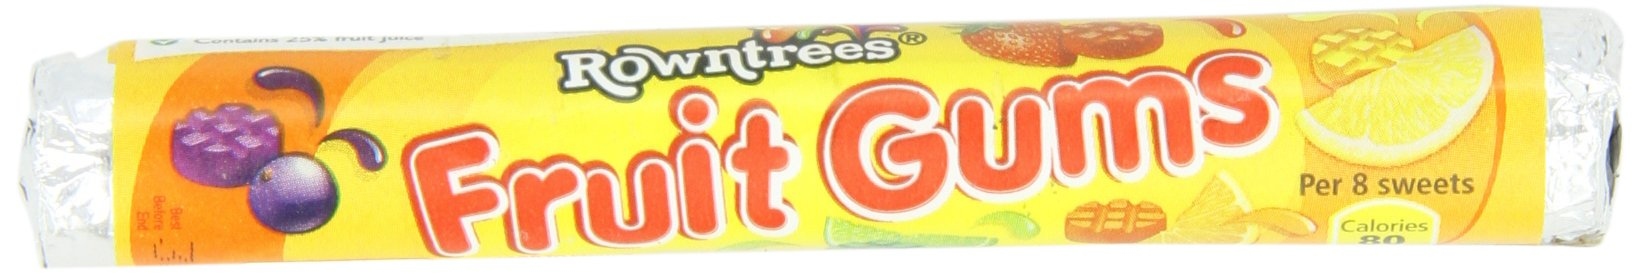 Rowntree's Fruit Gum Roll, 1.6-Ounces (Pack of 18)